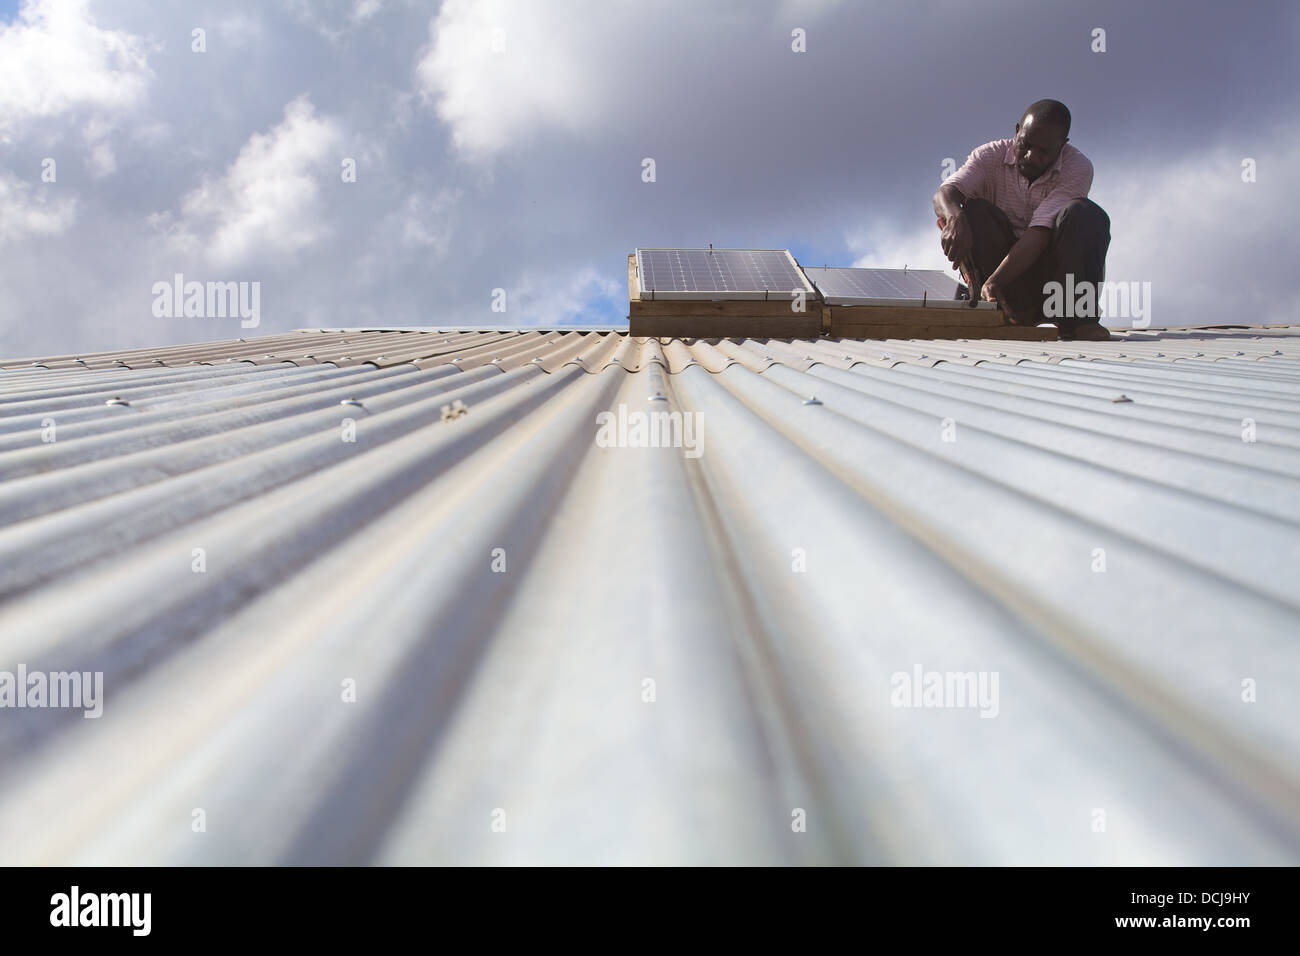 Solar panel technician carrying out maintenance work on a corrugated roof, Miono Region, Tanzania. Stock Photo